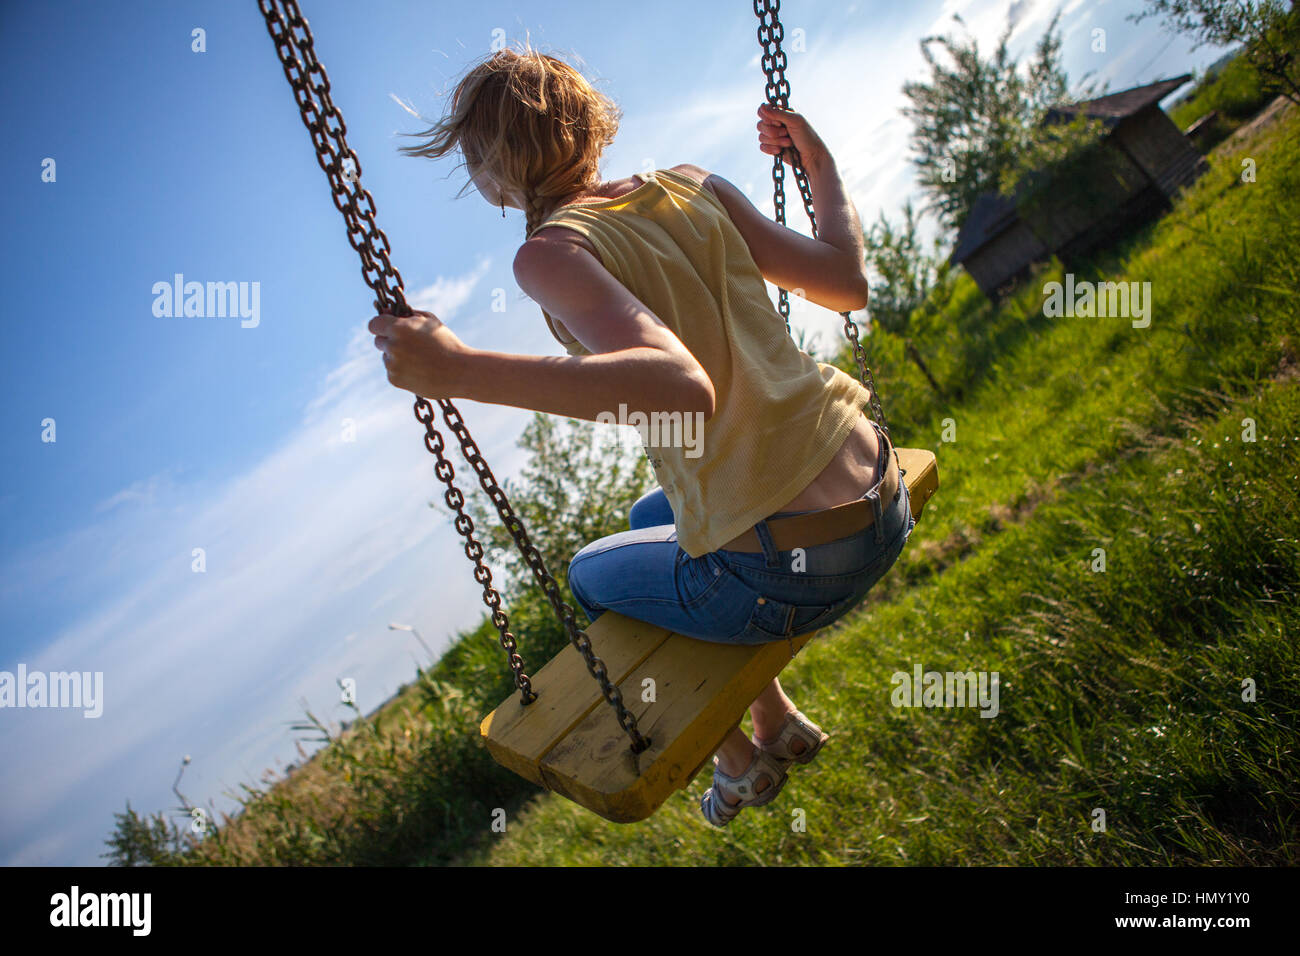 Girl swinging on a swing in the village stock photo for Swingvillage